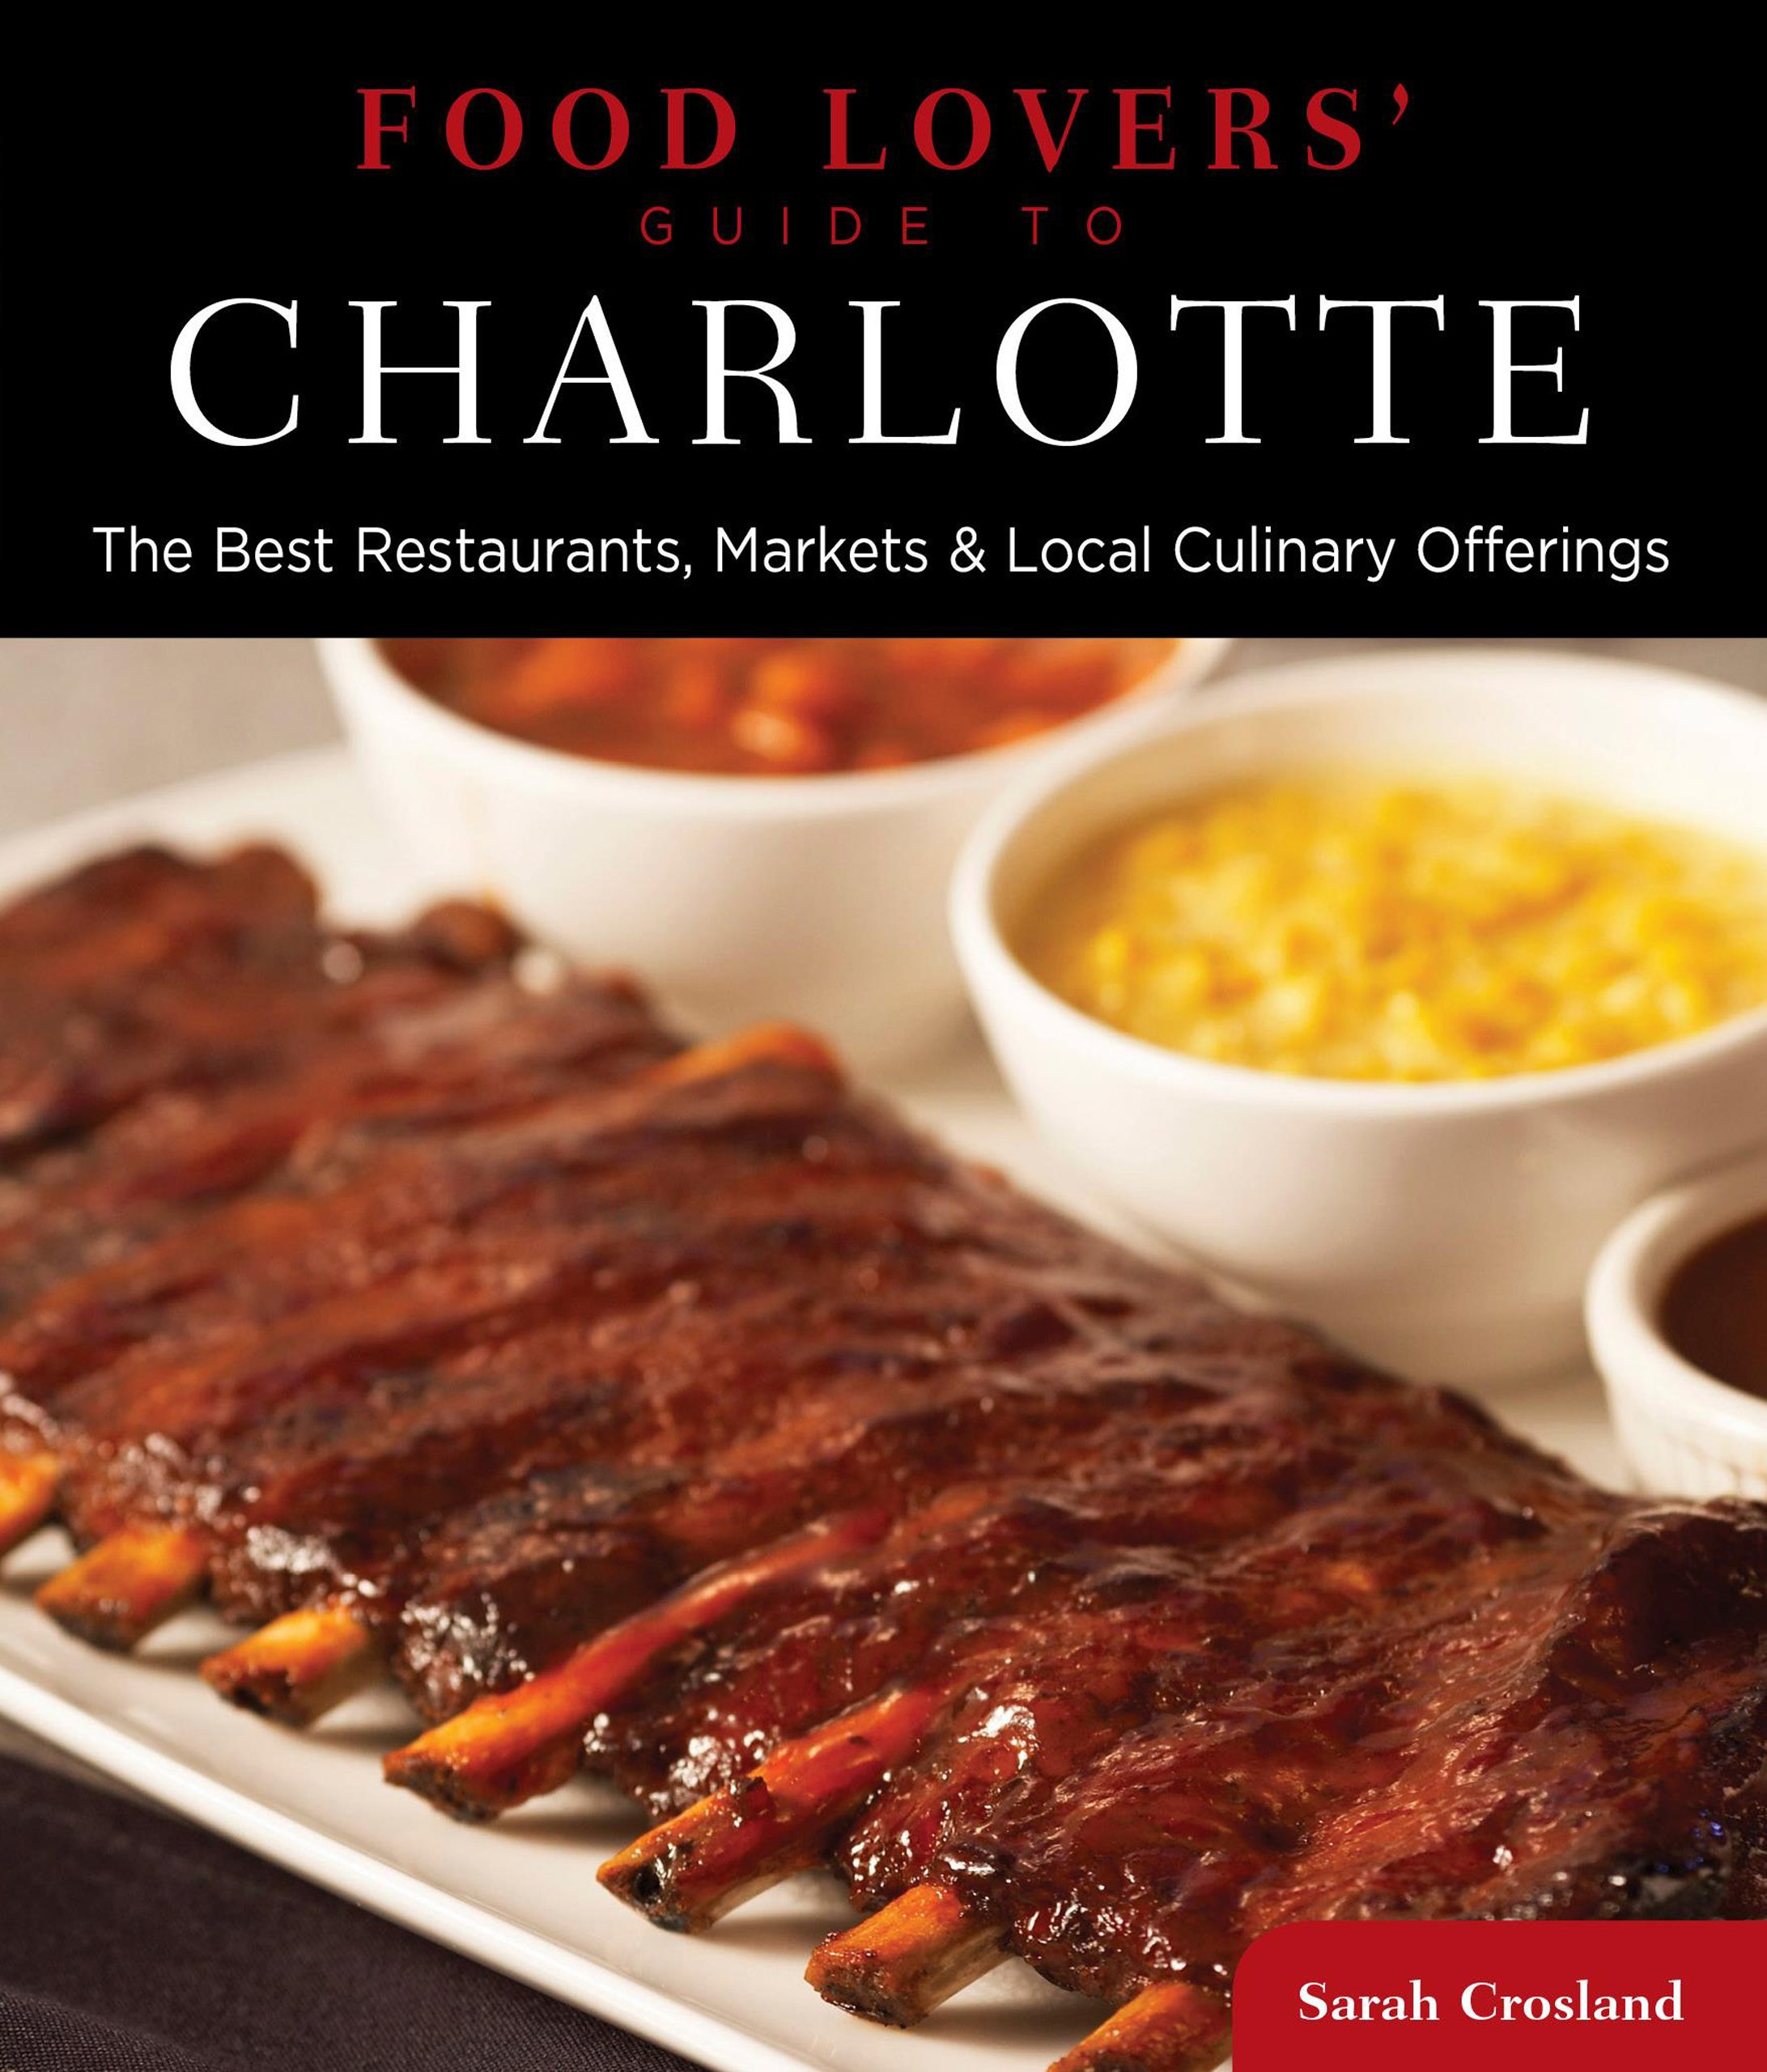 Food lovers guide to charlotte the best restaurants markets food lovers guide to charlotte the best restaurants markets local culinary offerings food lovers series sarah crosland 9780762781102 amazon forumfinder Images